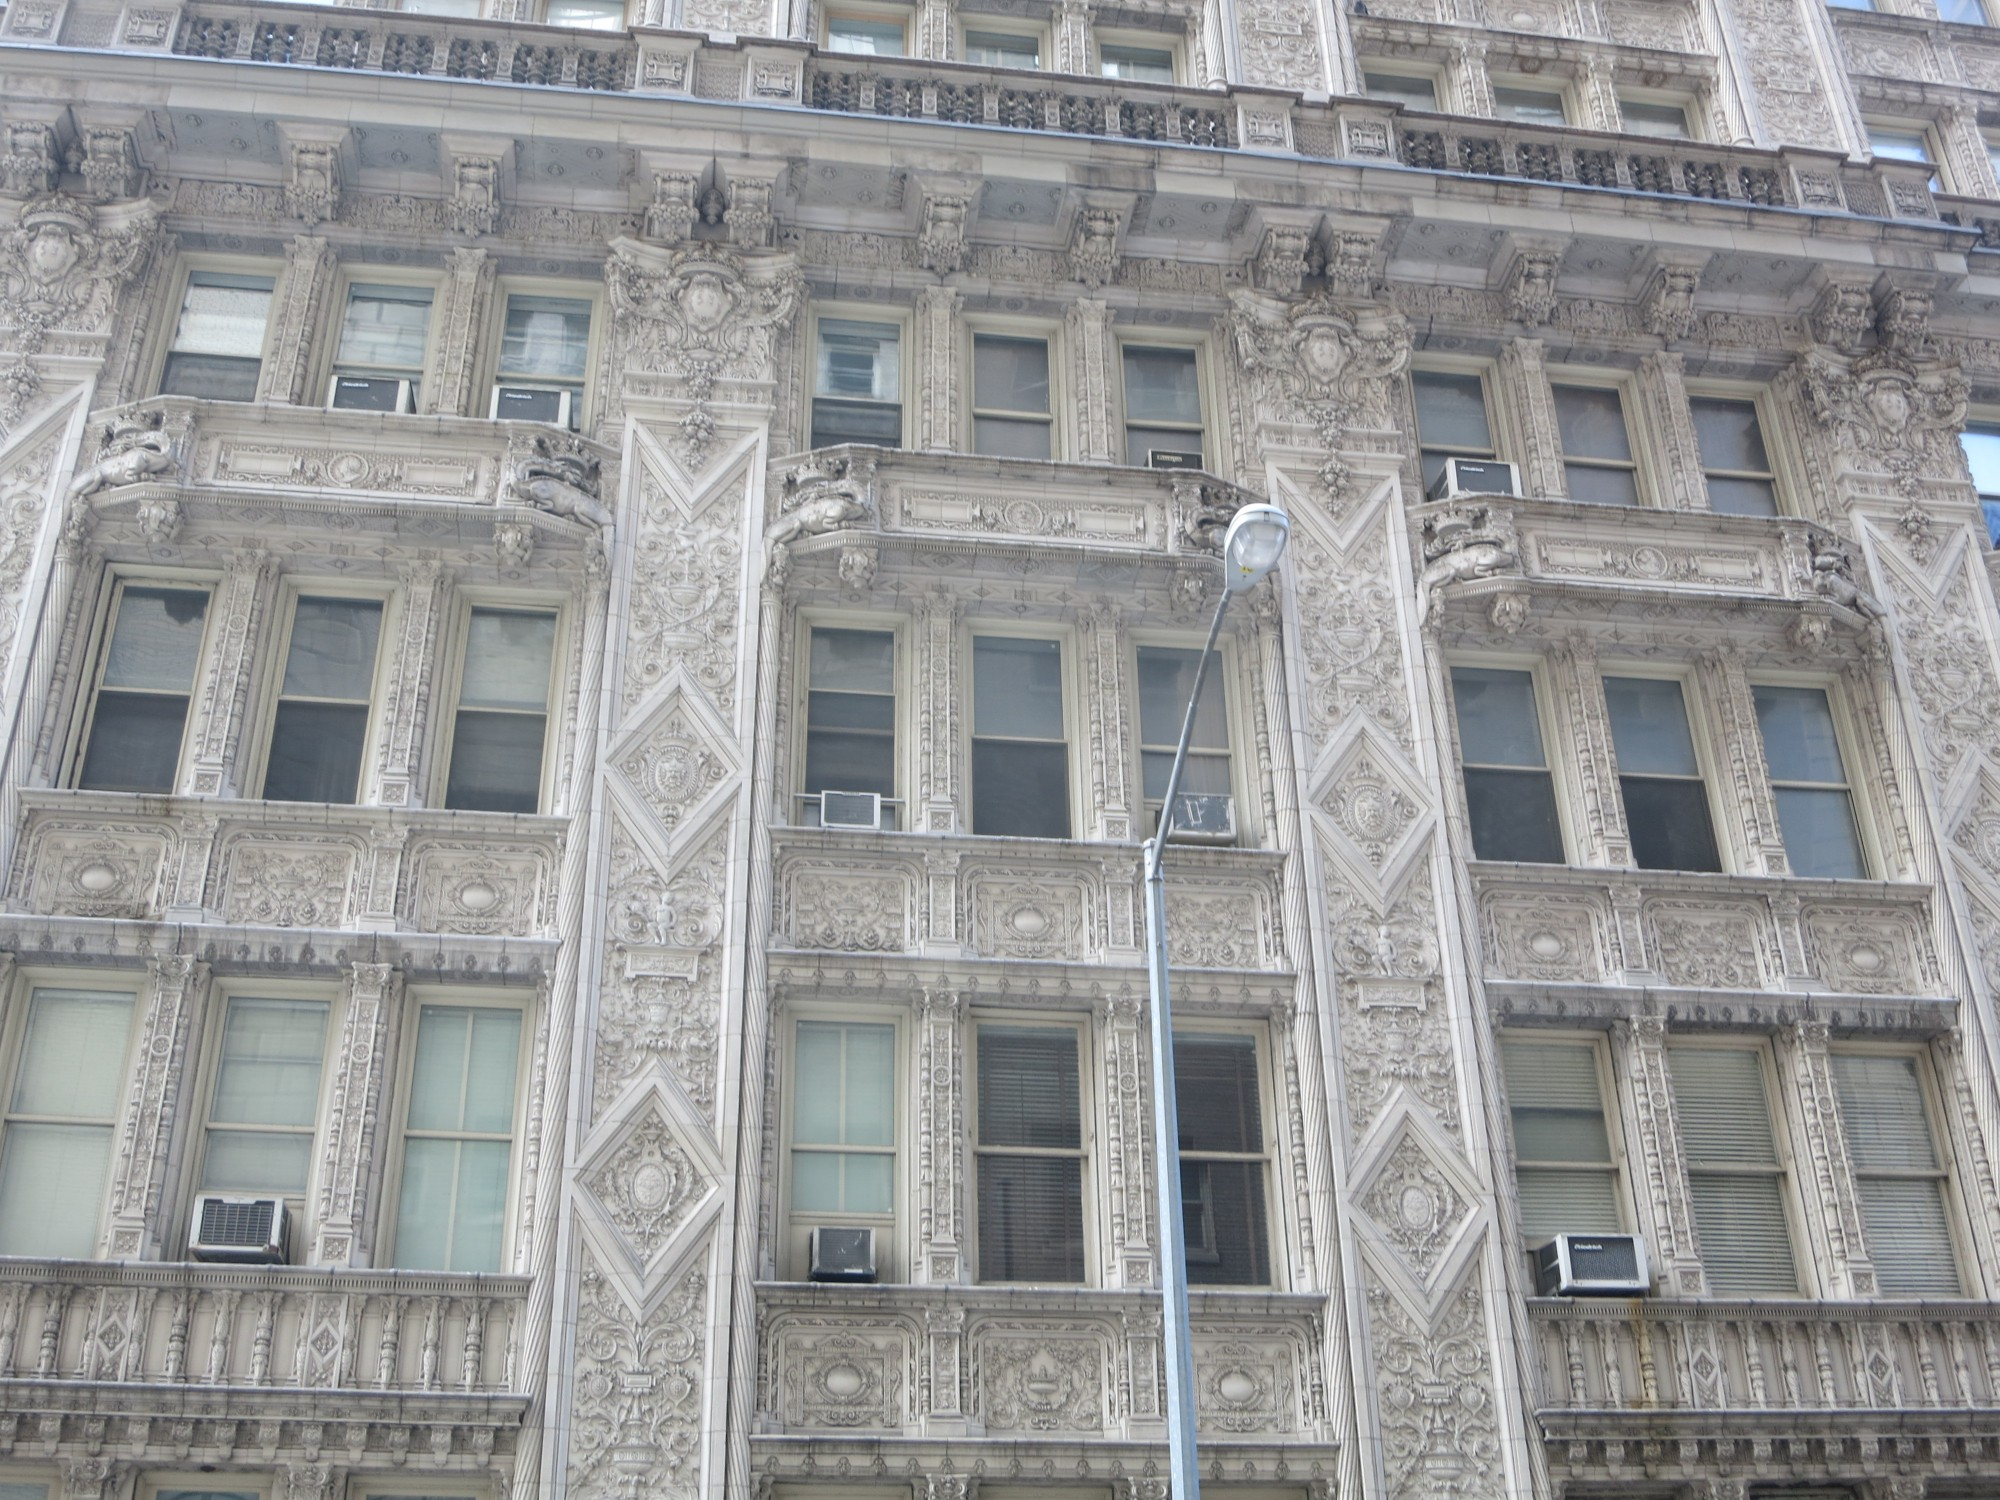 new york city a photo essay rachel s ruminations wonderfully detailed architecture in new york city